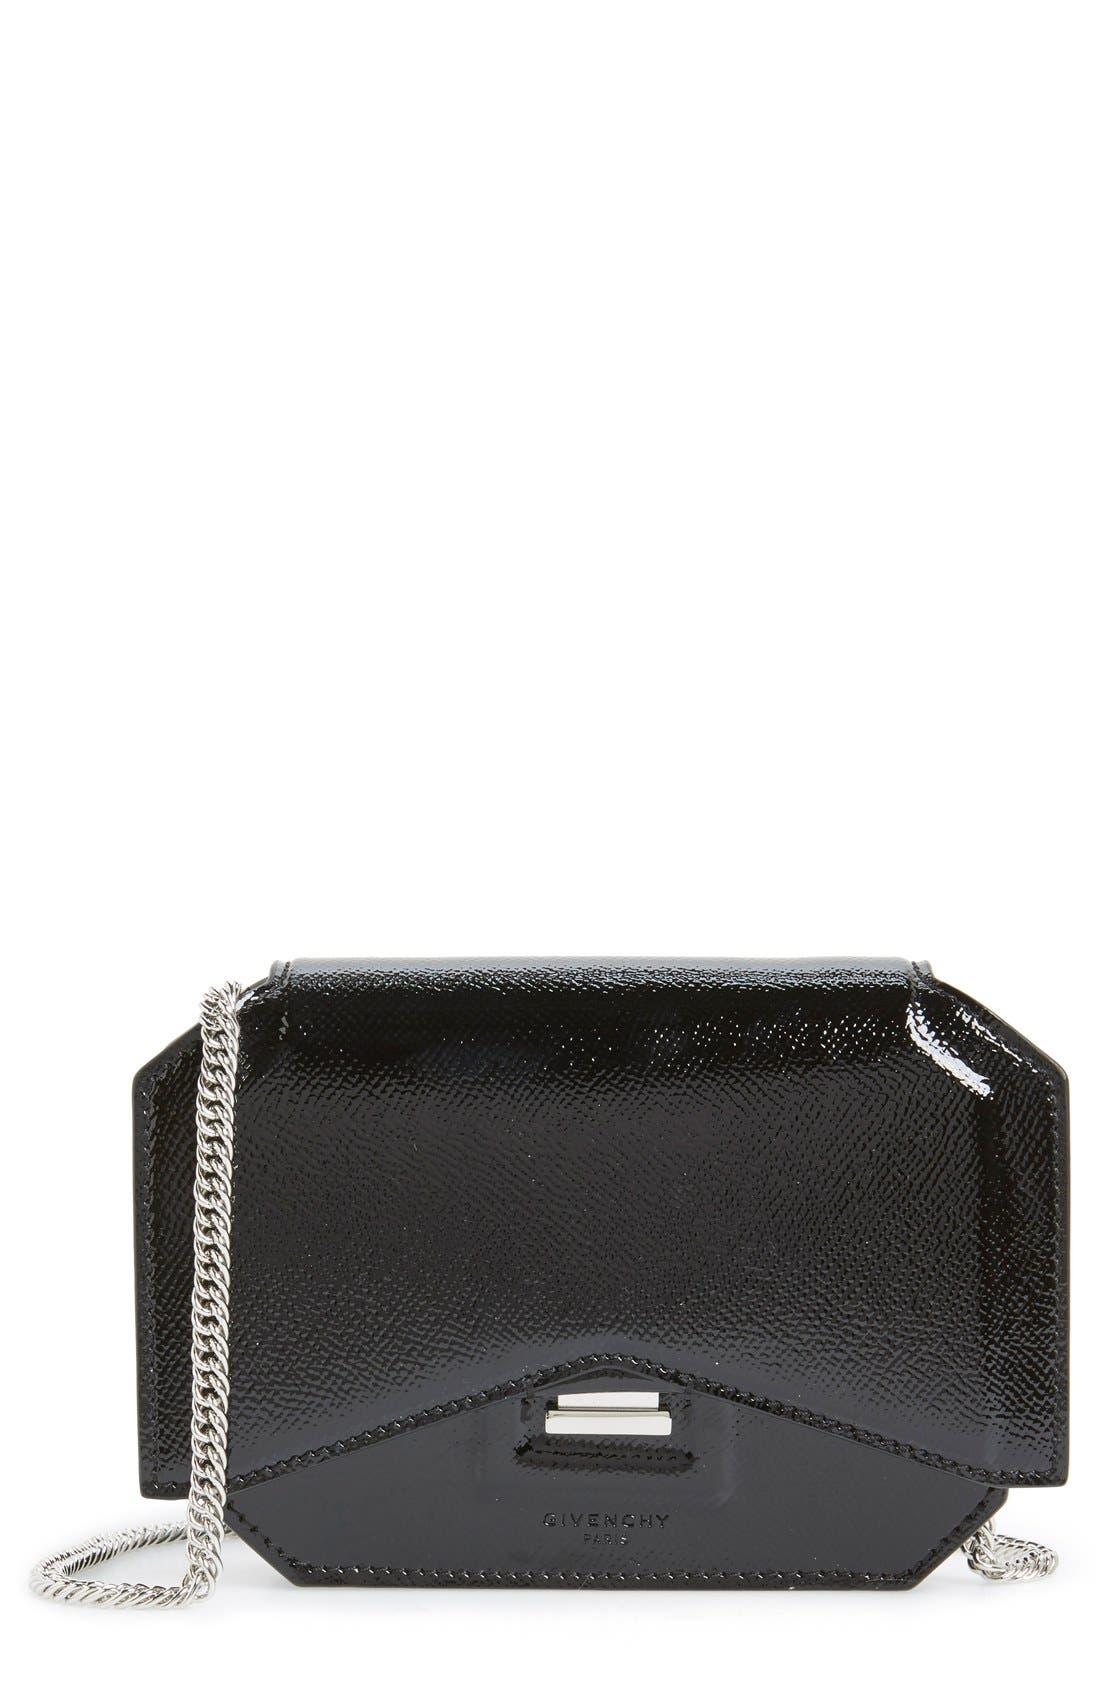 GIVENCHY 'Bow Cut' Patent Leather Wallet on a